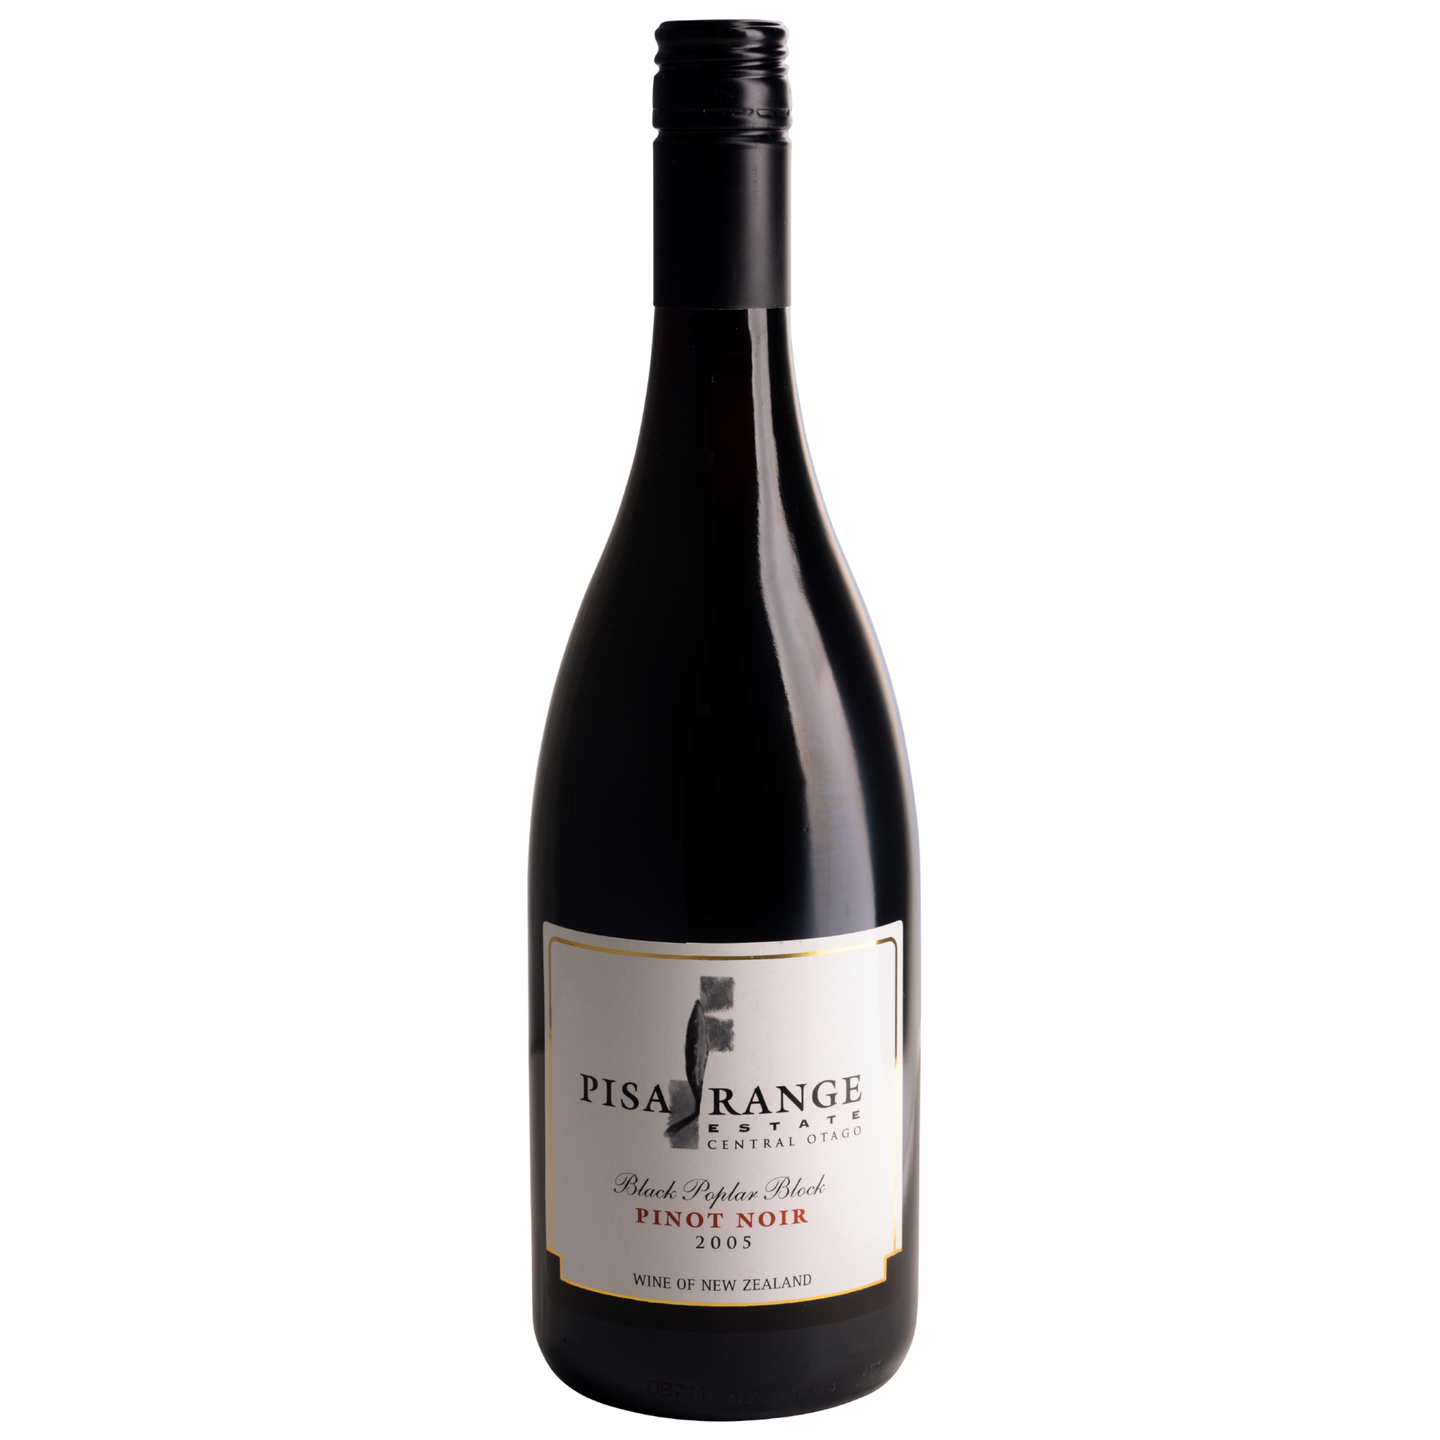 2005 Pisa Range Estate Black Poplar Block Pinot Noir